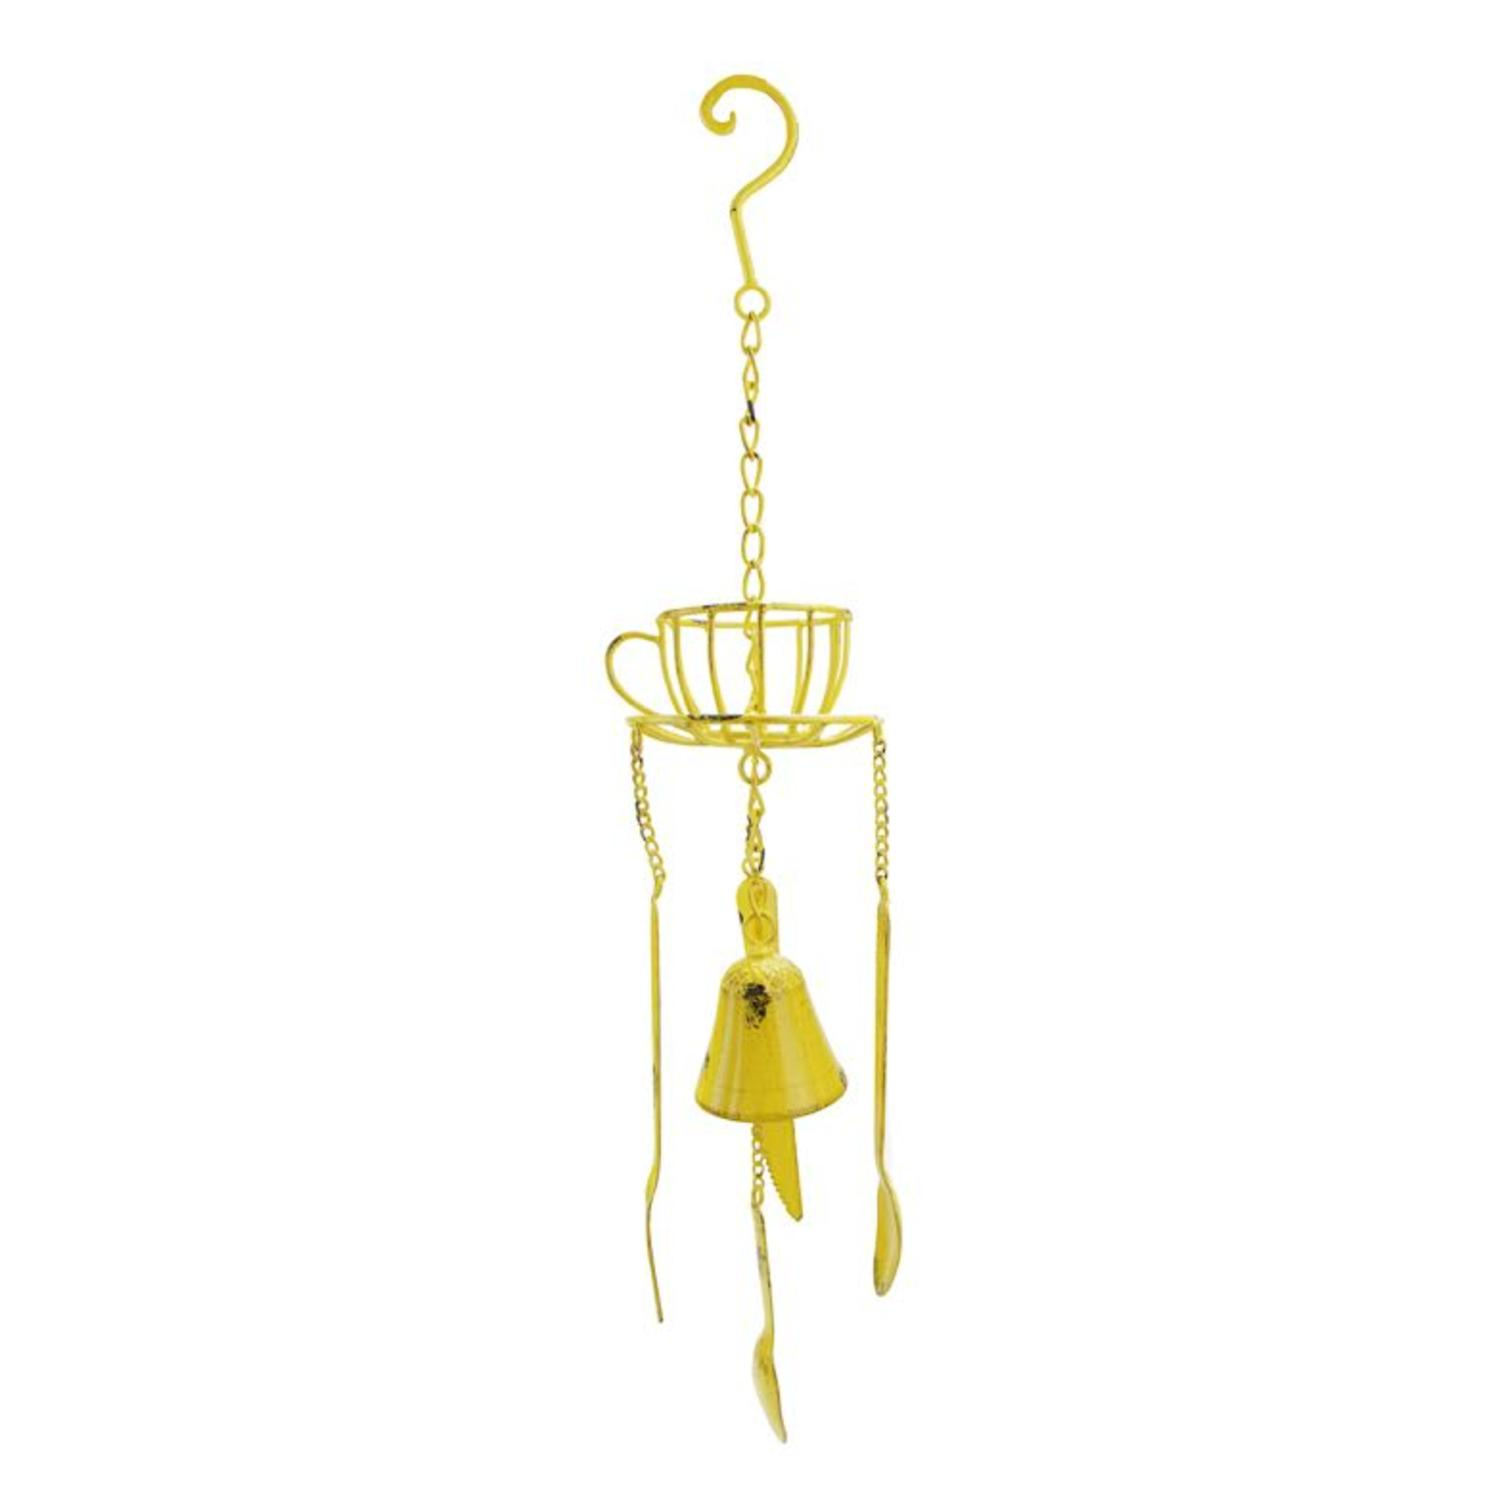 ''23.25'''' Yellow Cafe Themed Hanging Outdoor Garden WIND CHIME Decoration''